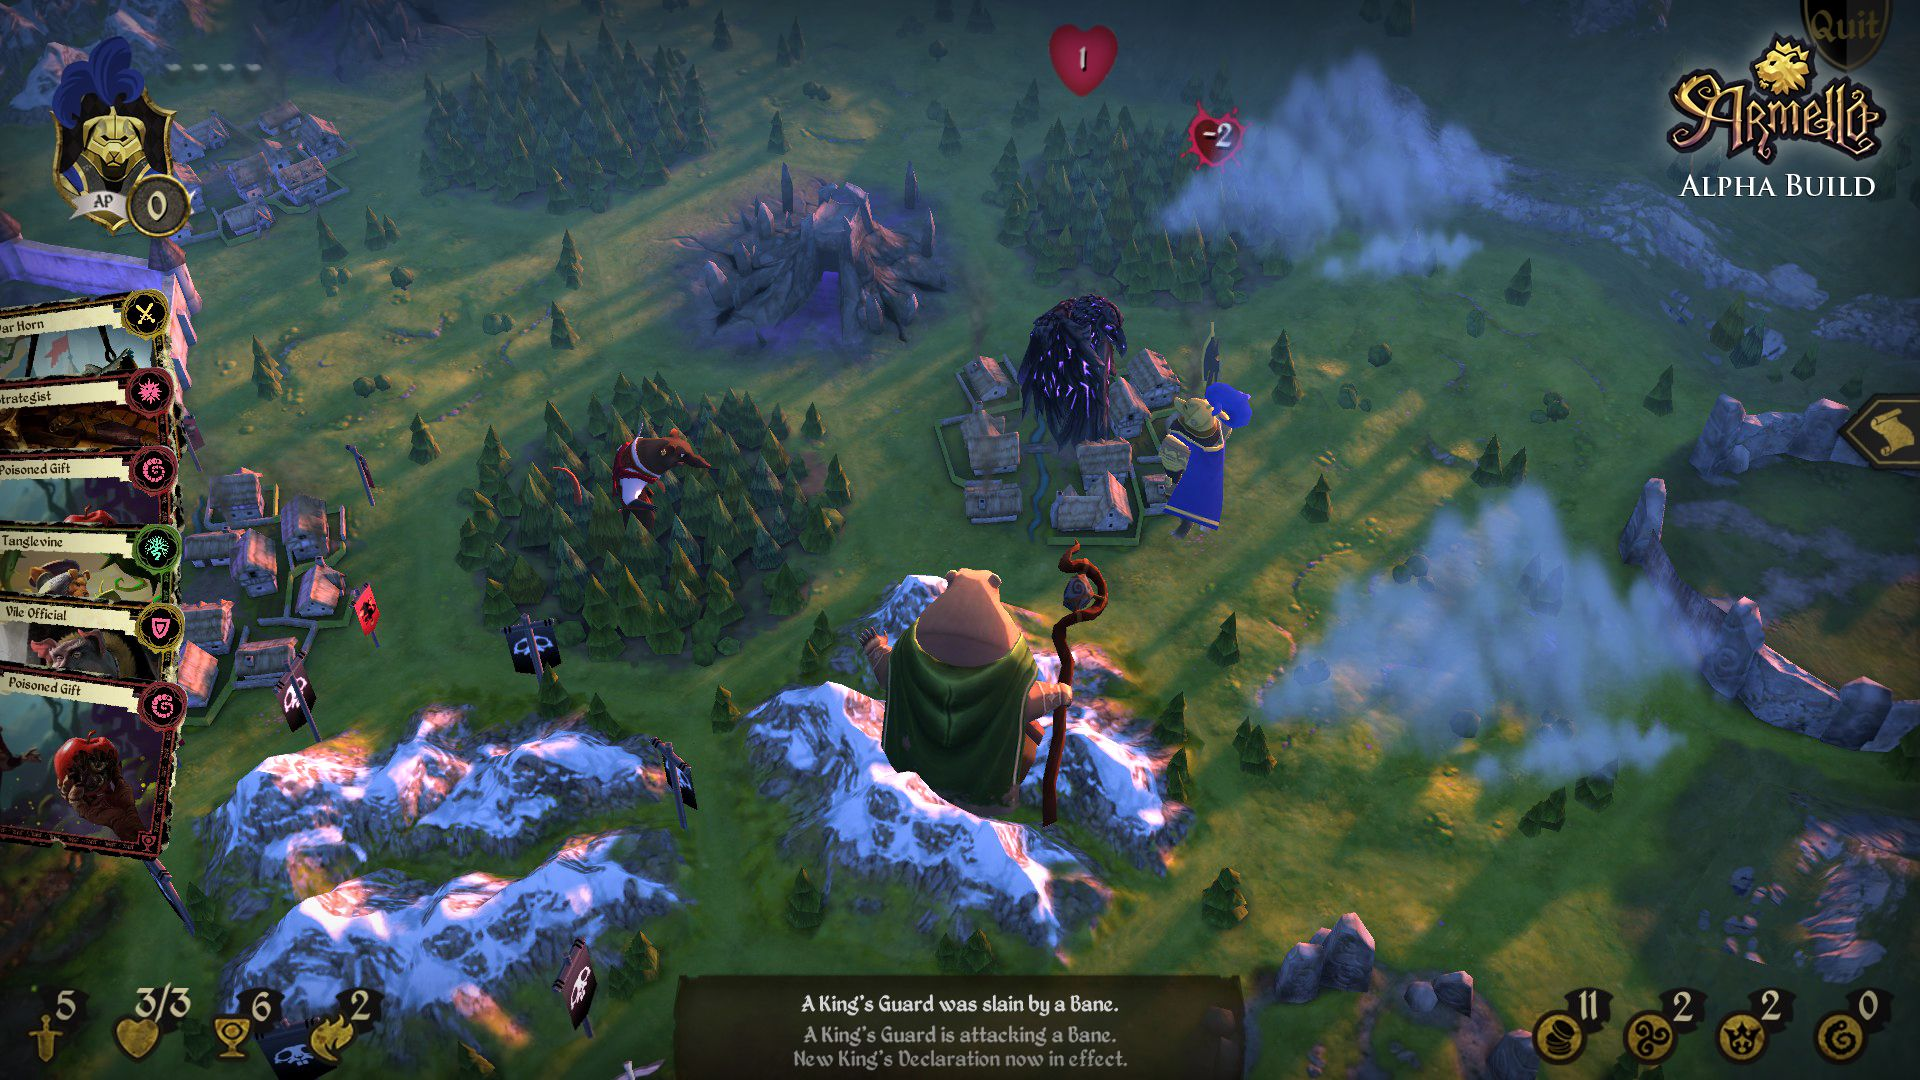 'Armello' pitch mixes board, card and video games